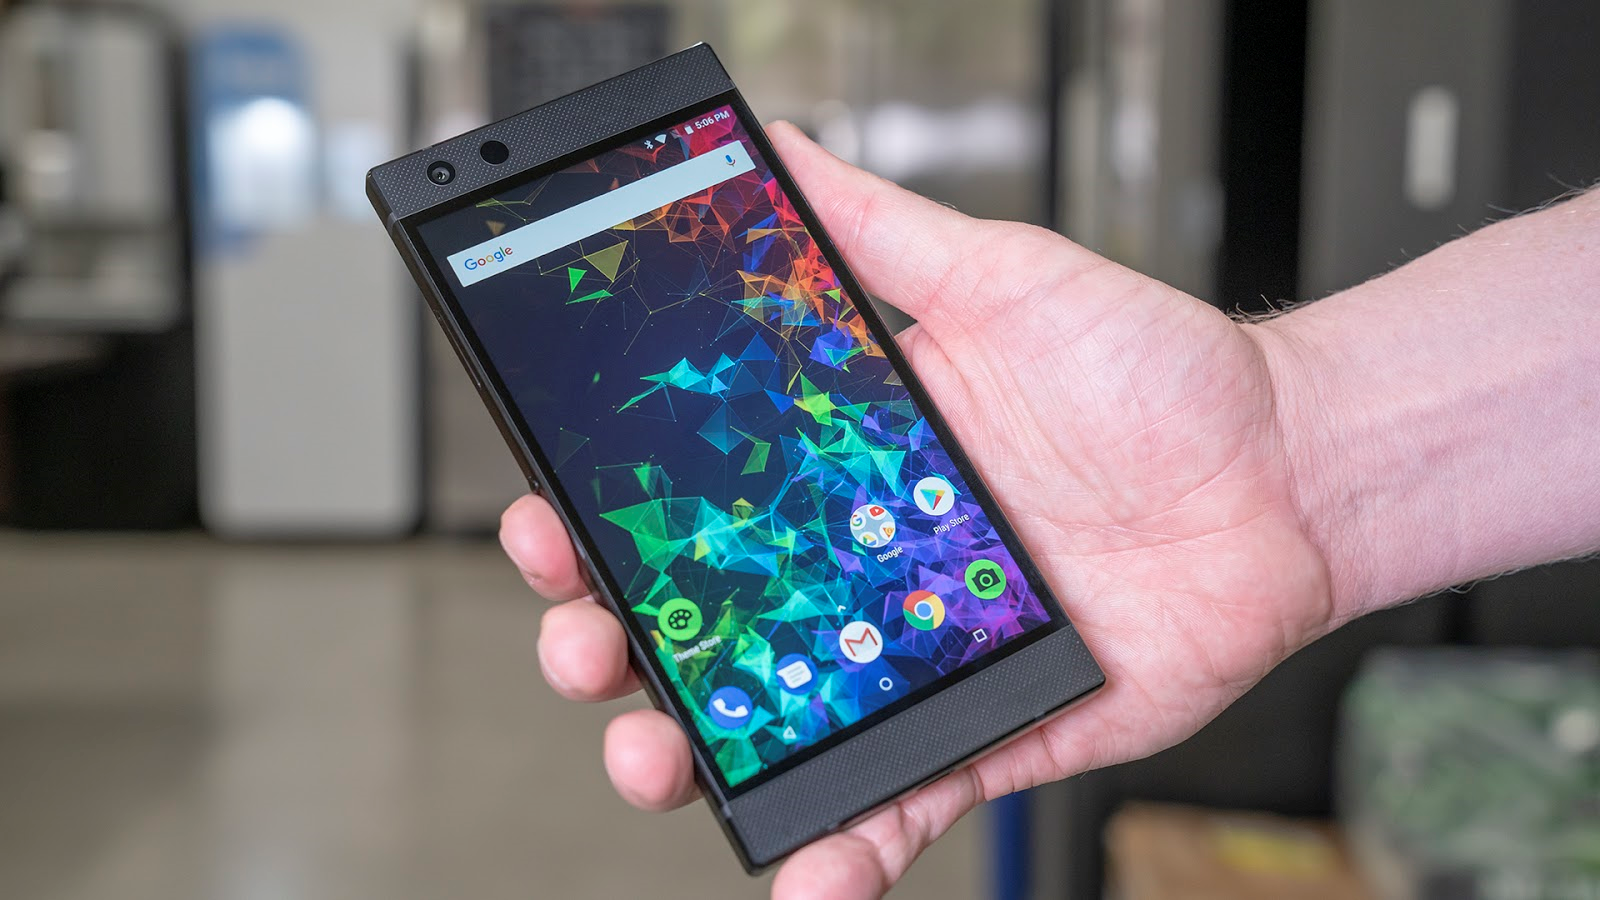 The Razer Phone 2 looks to push the device further into flagship territory, with much needed adjustments to the camera, and overall quality of life improvements.